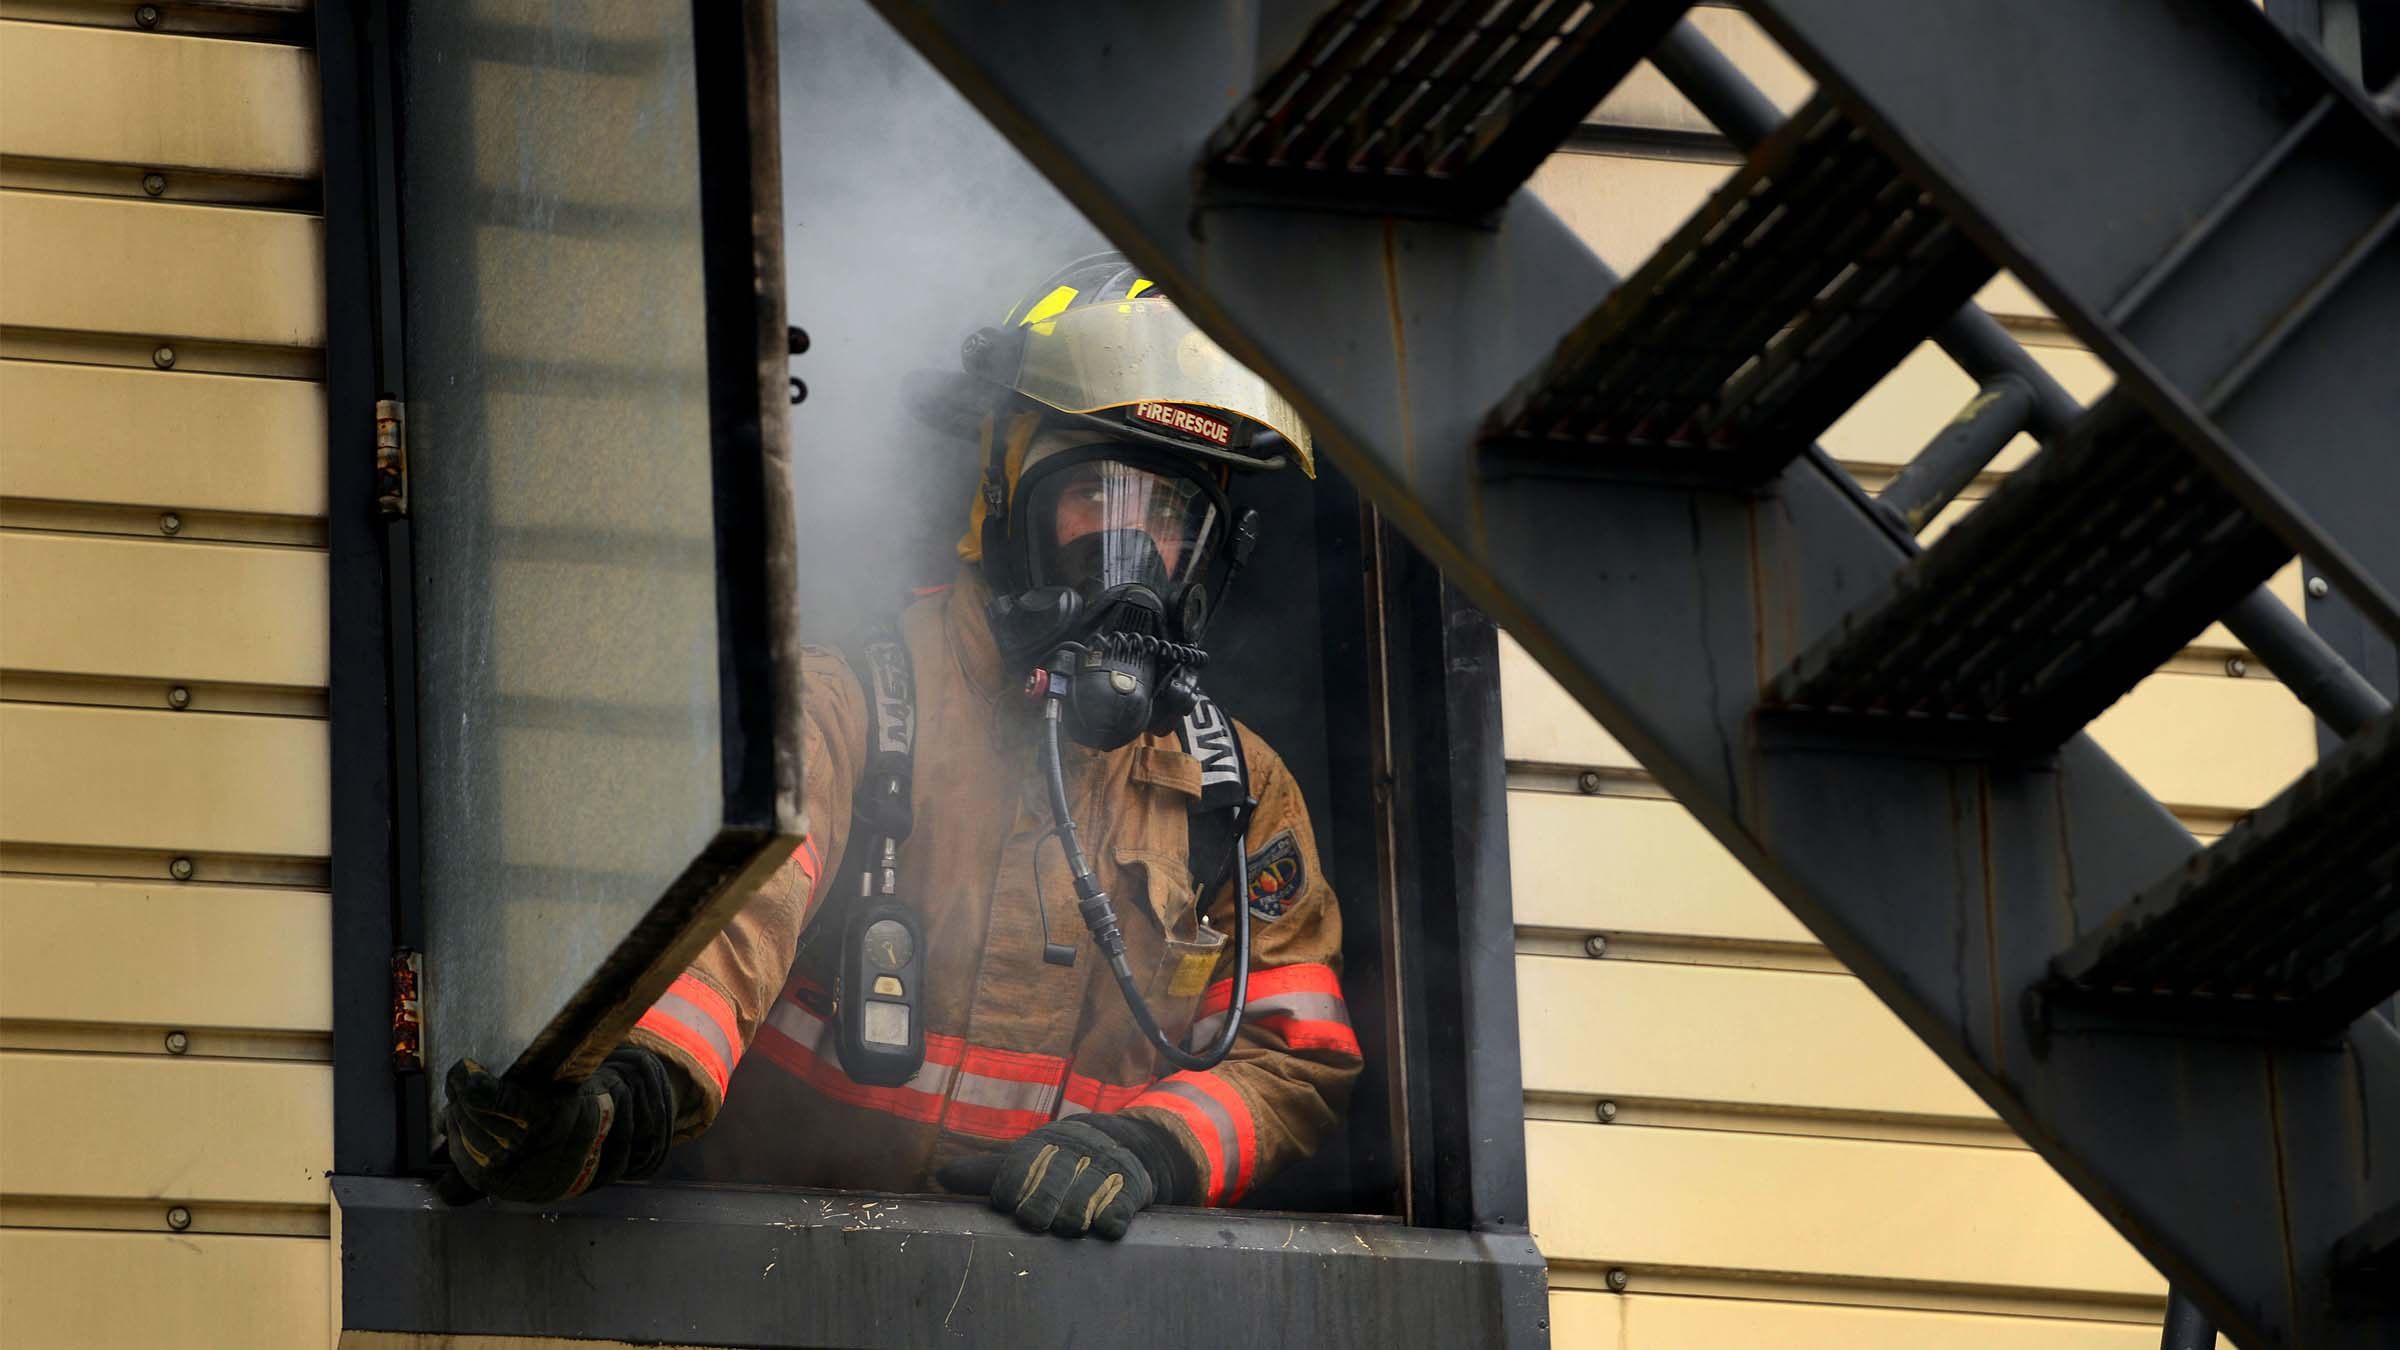 Firefighter looking out of a smoke filled window